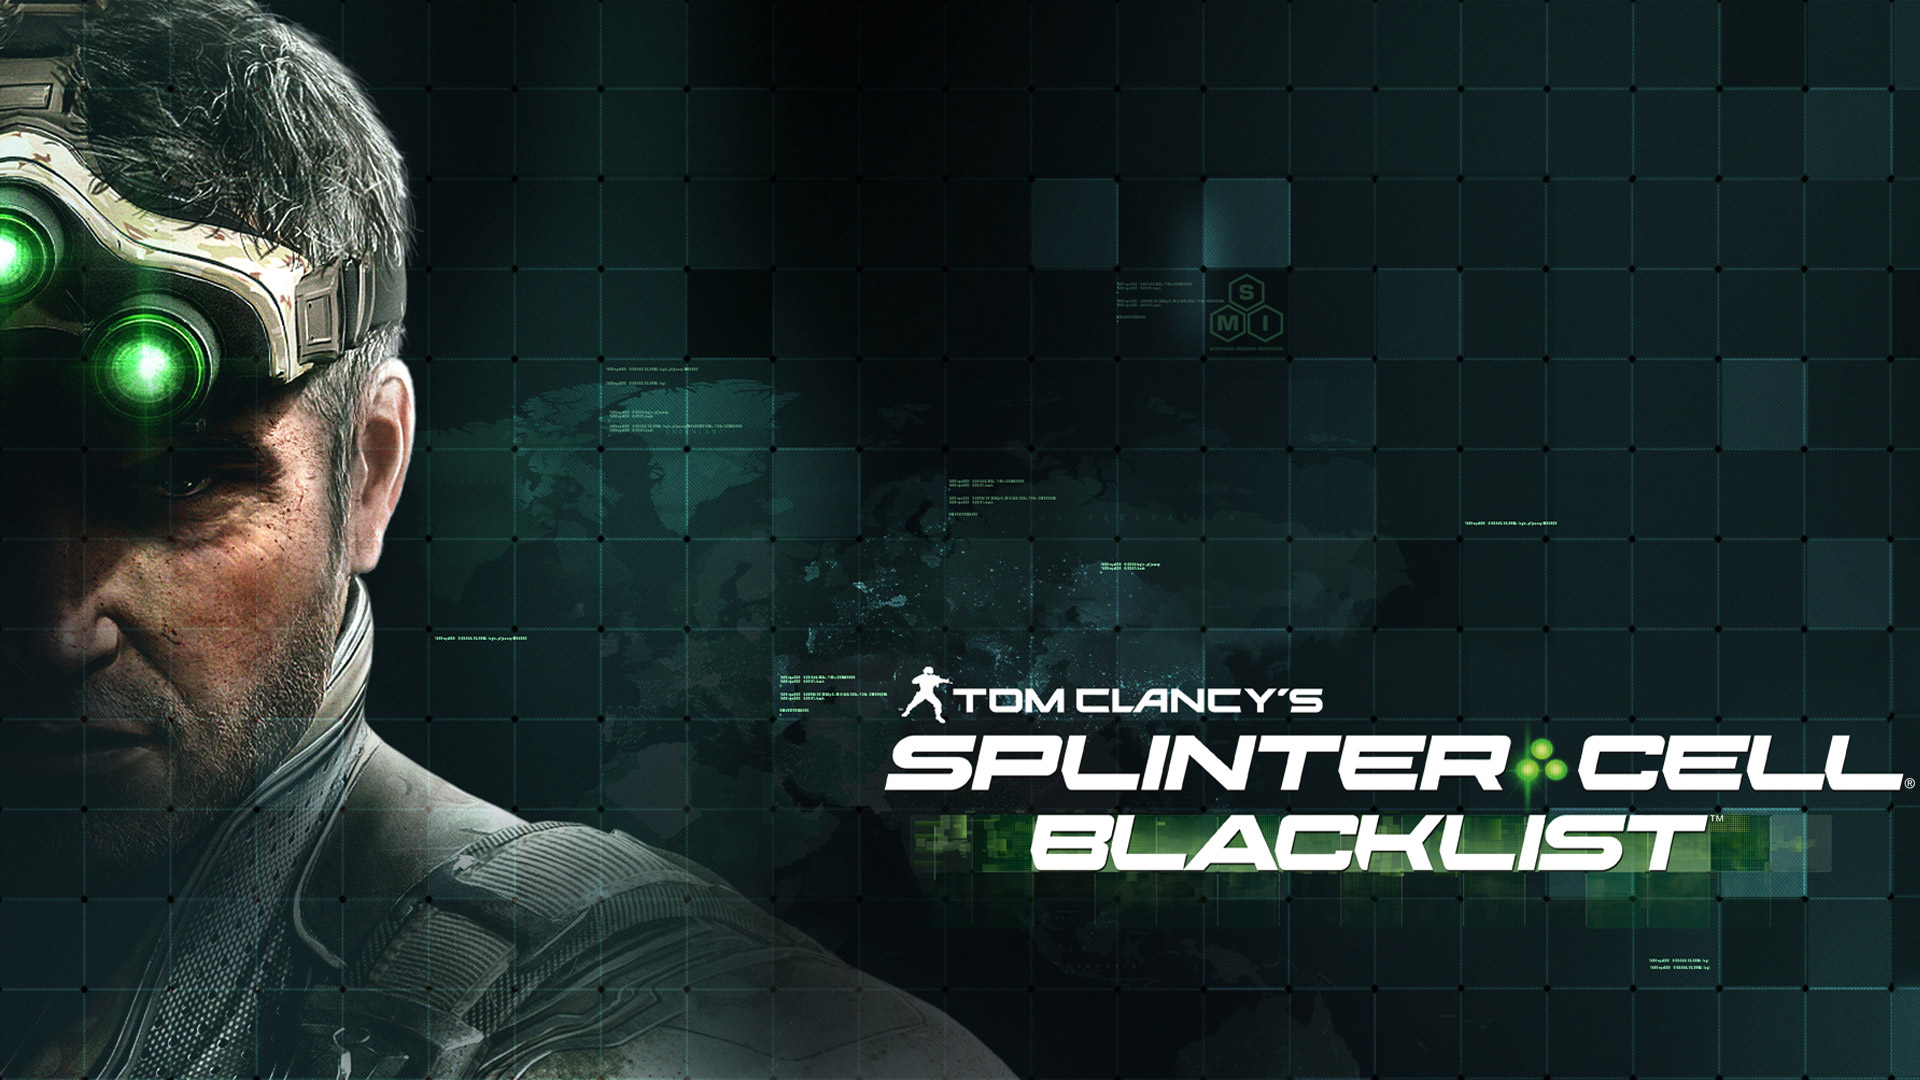 Splinter Cell: Blacklist Wallpaper in 1920x1080